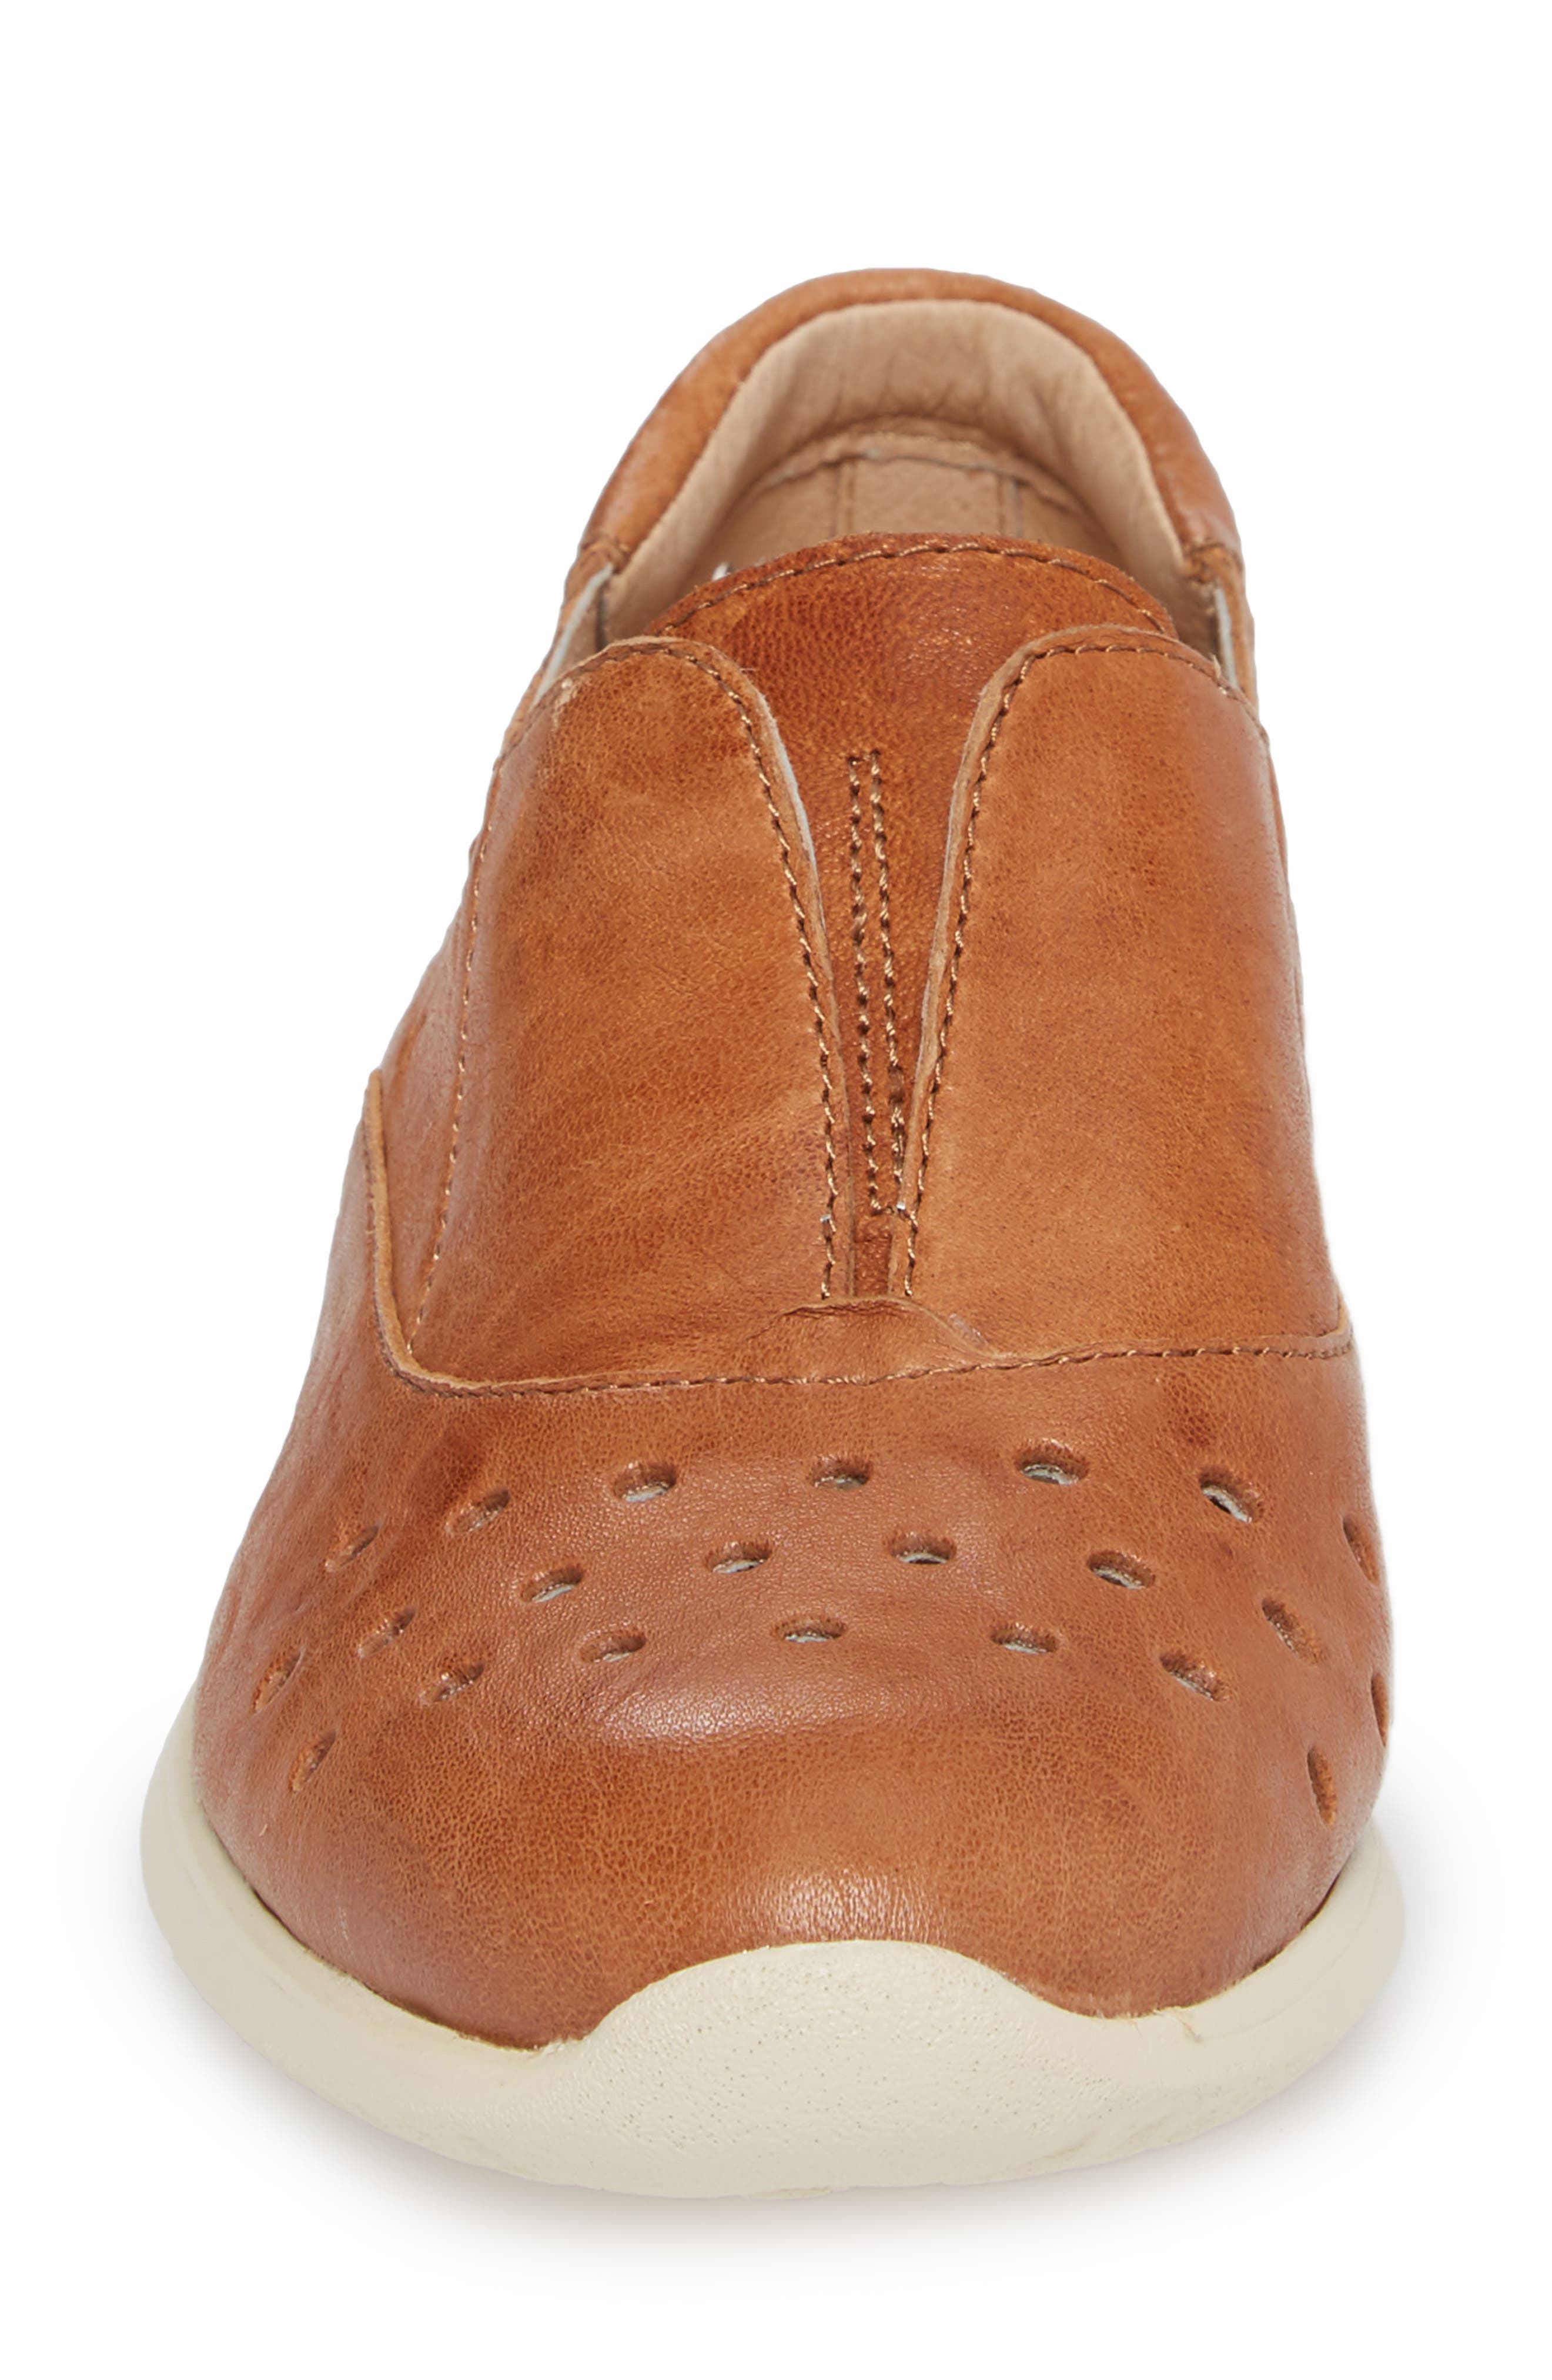 Noreen Slip-On Sneaker,                             Alternate thumbnail 4, color,                             Luggage Leather